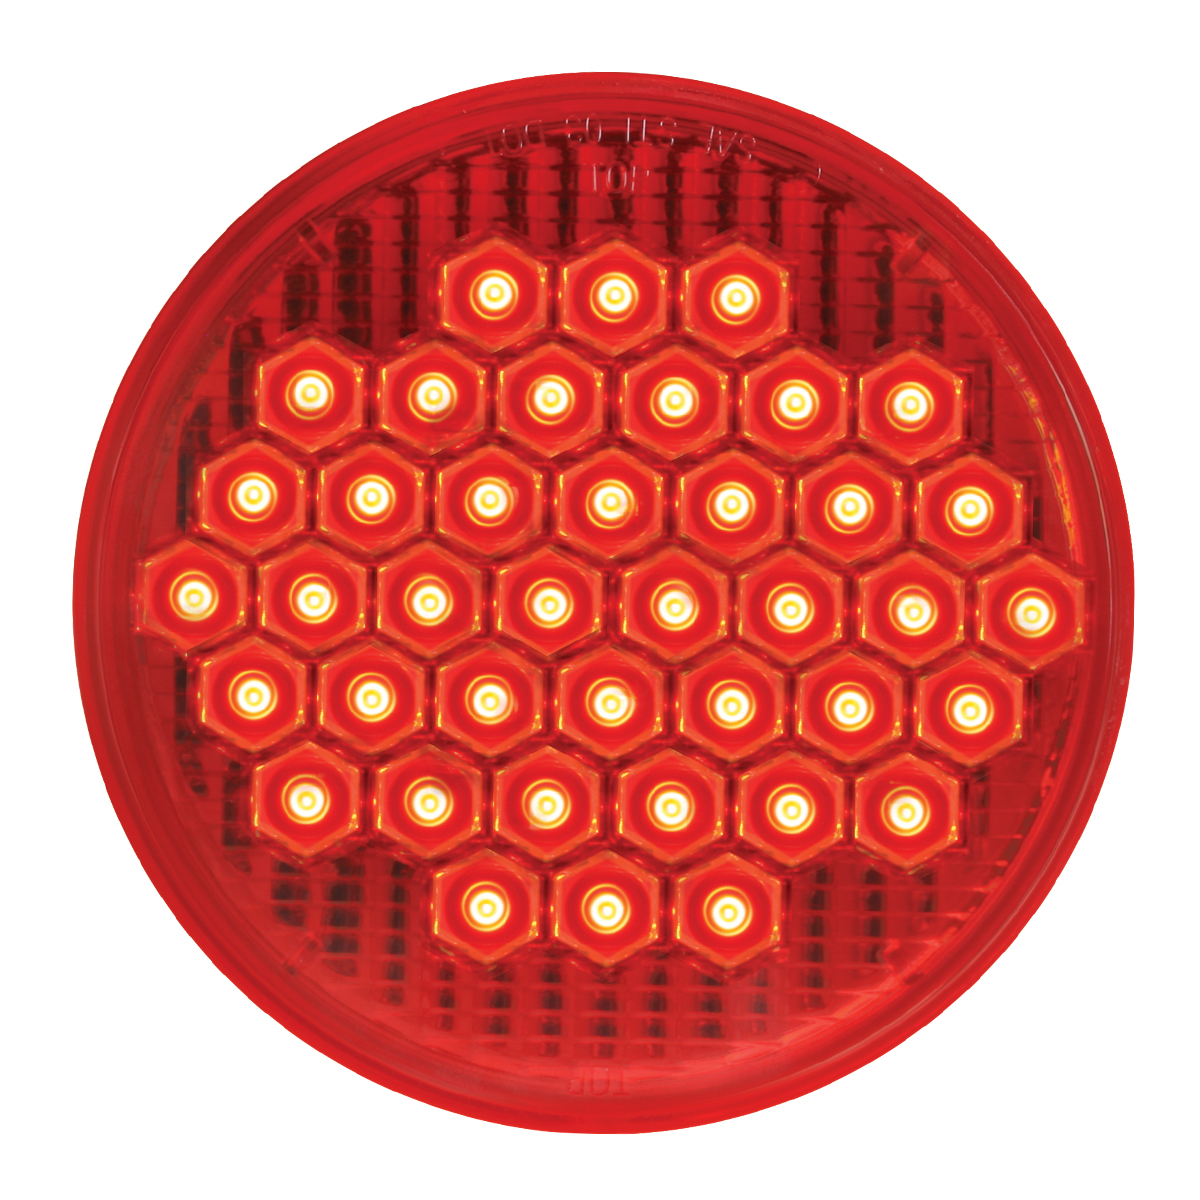 "#87700 4"" Round High Count LED Flat - Red/Red"